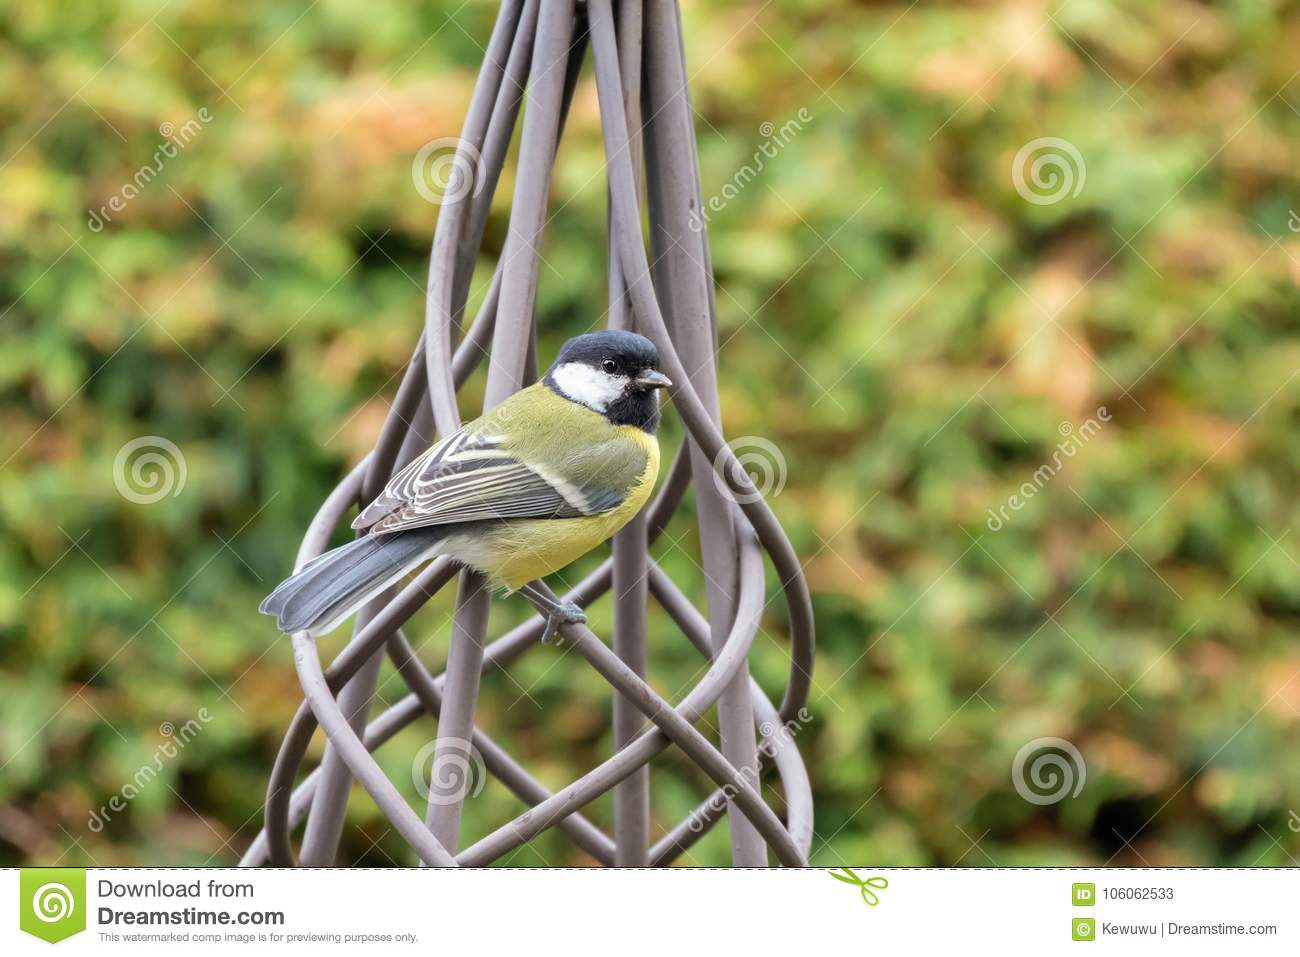 Black tit bird